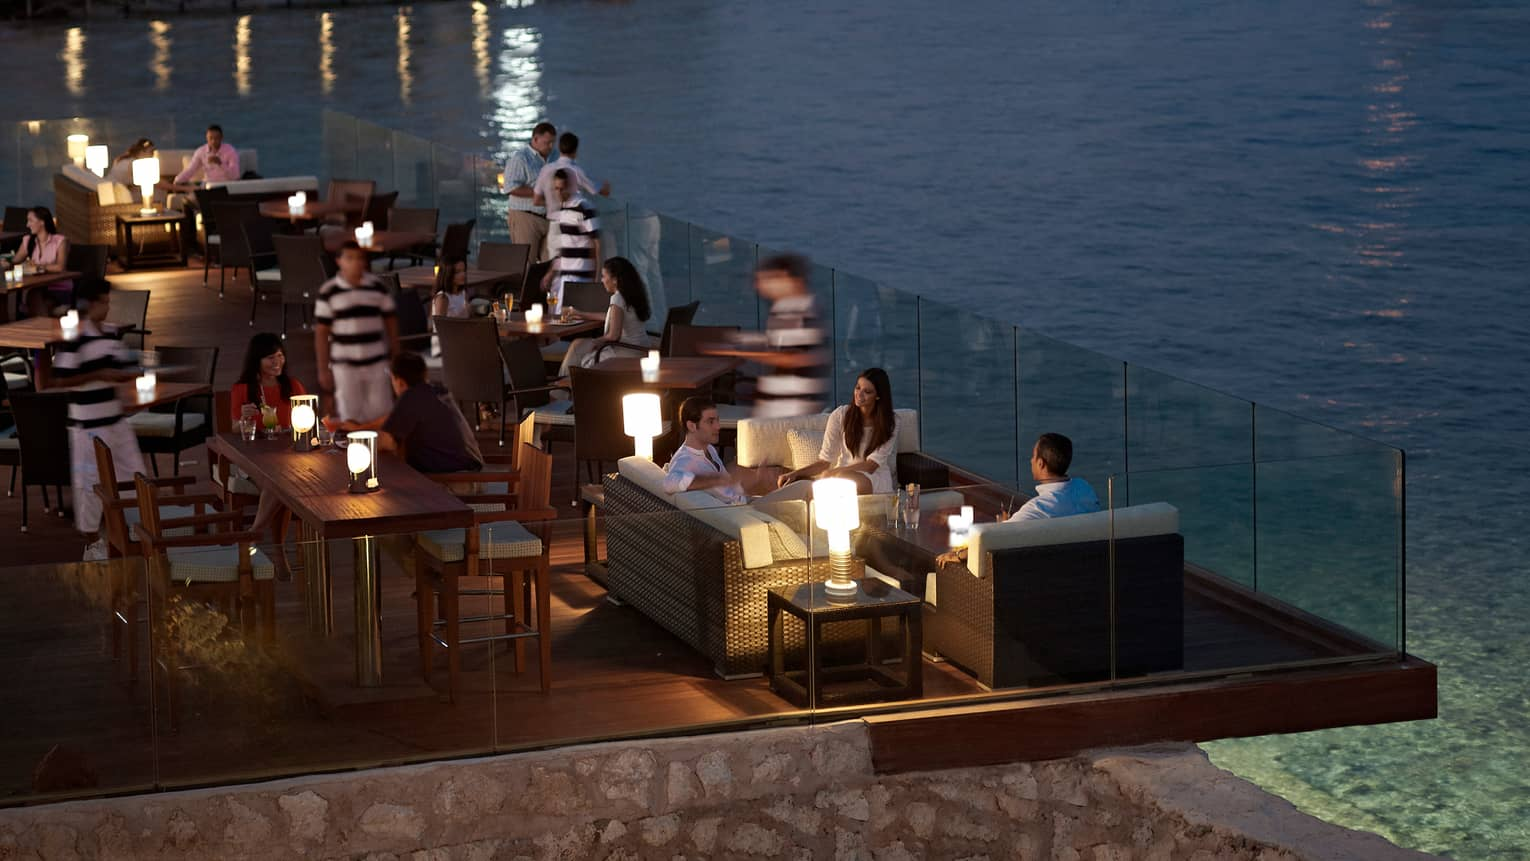 Looking down at guests socializing at tables on Sails Asian Food Lounge patio at night